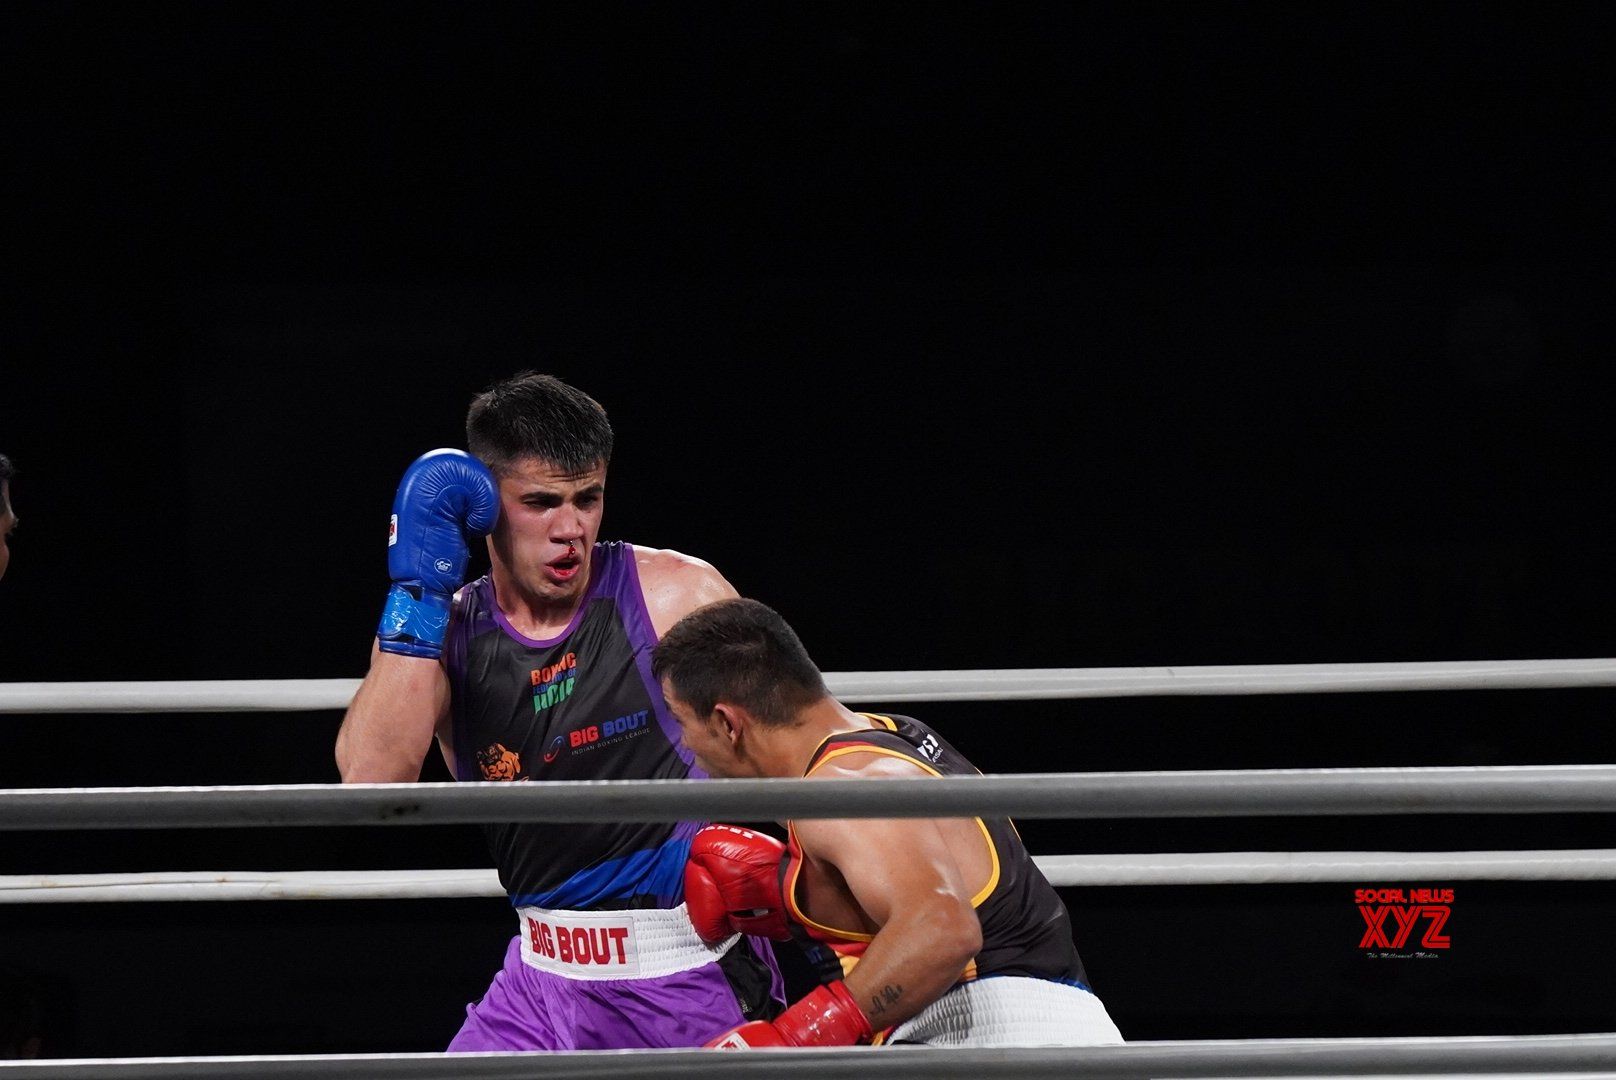 Greater Noida (Uttar Pradesh): Big Bout Indian Boxing League #Gallery